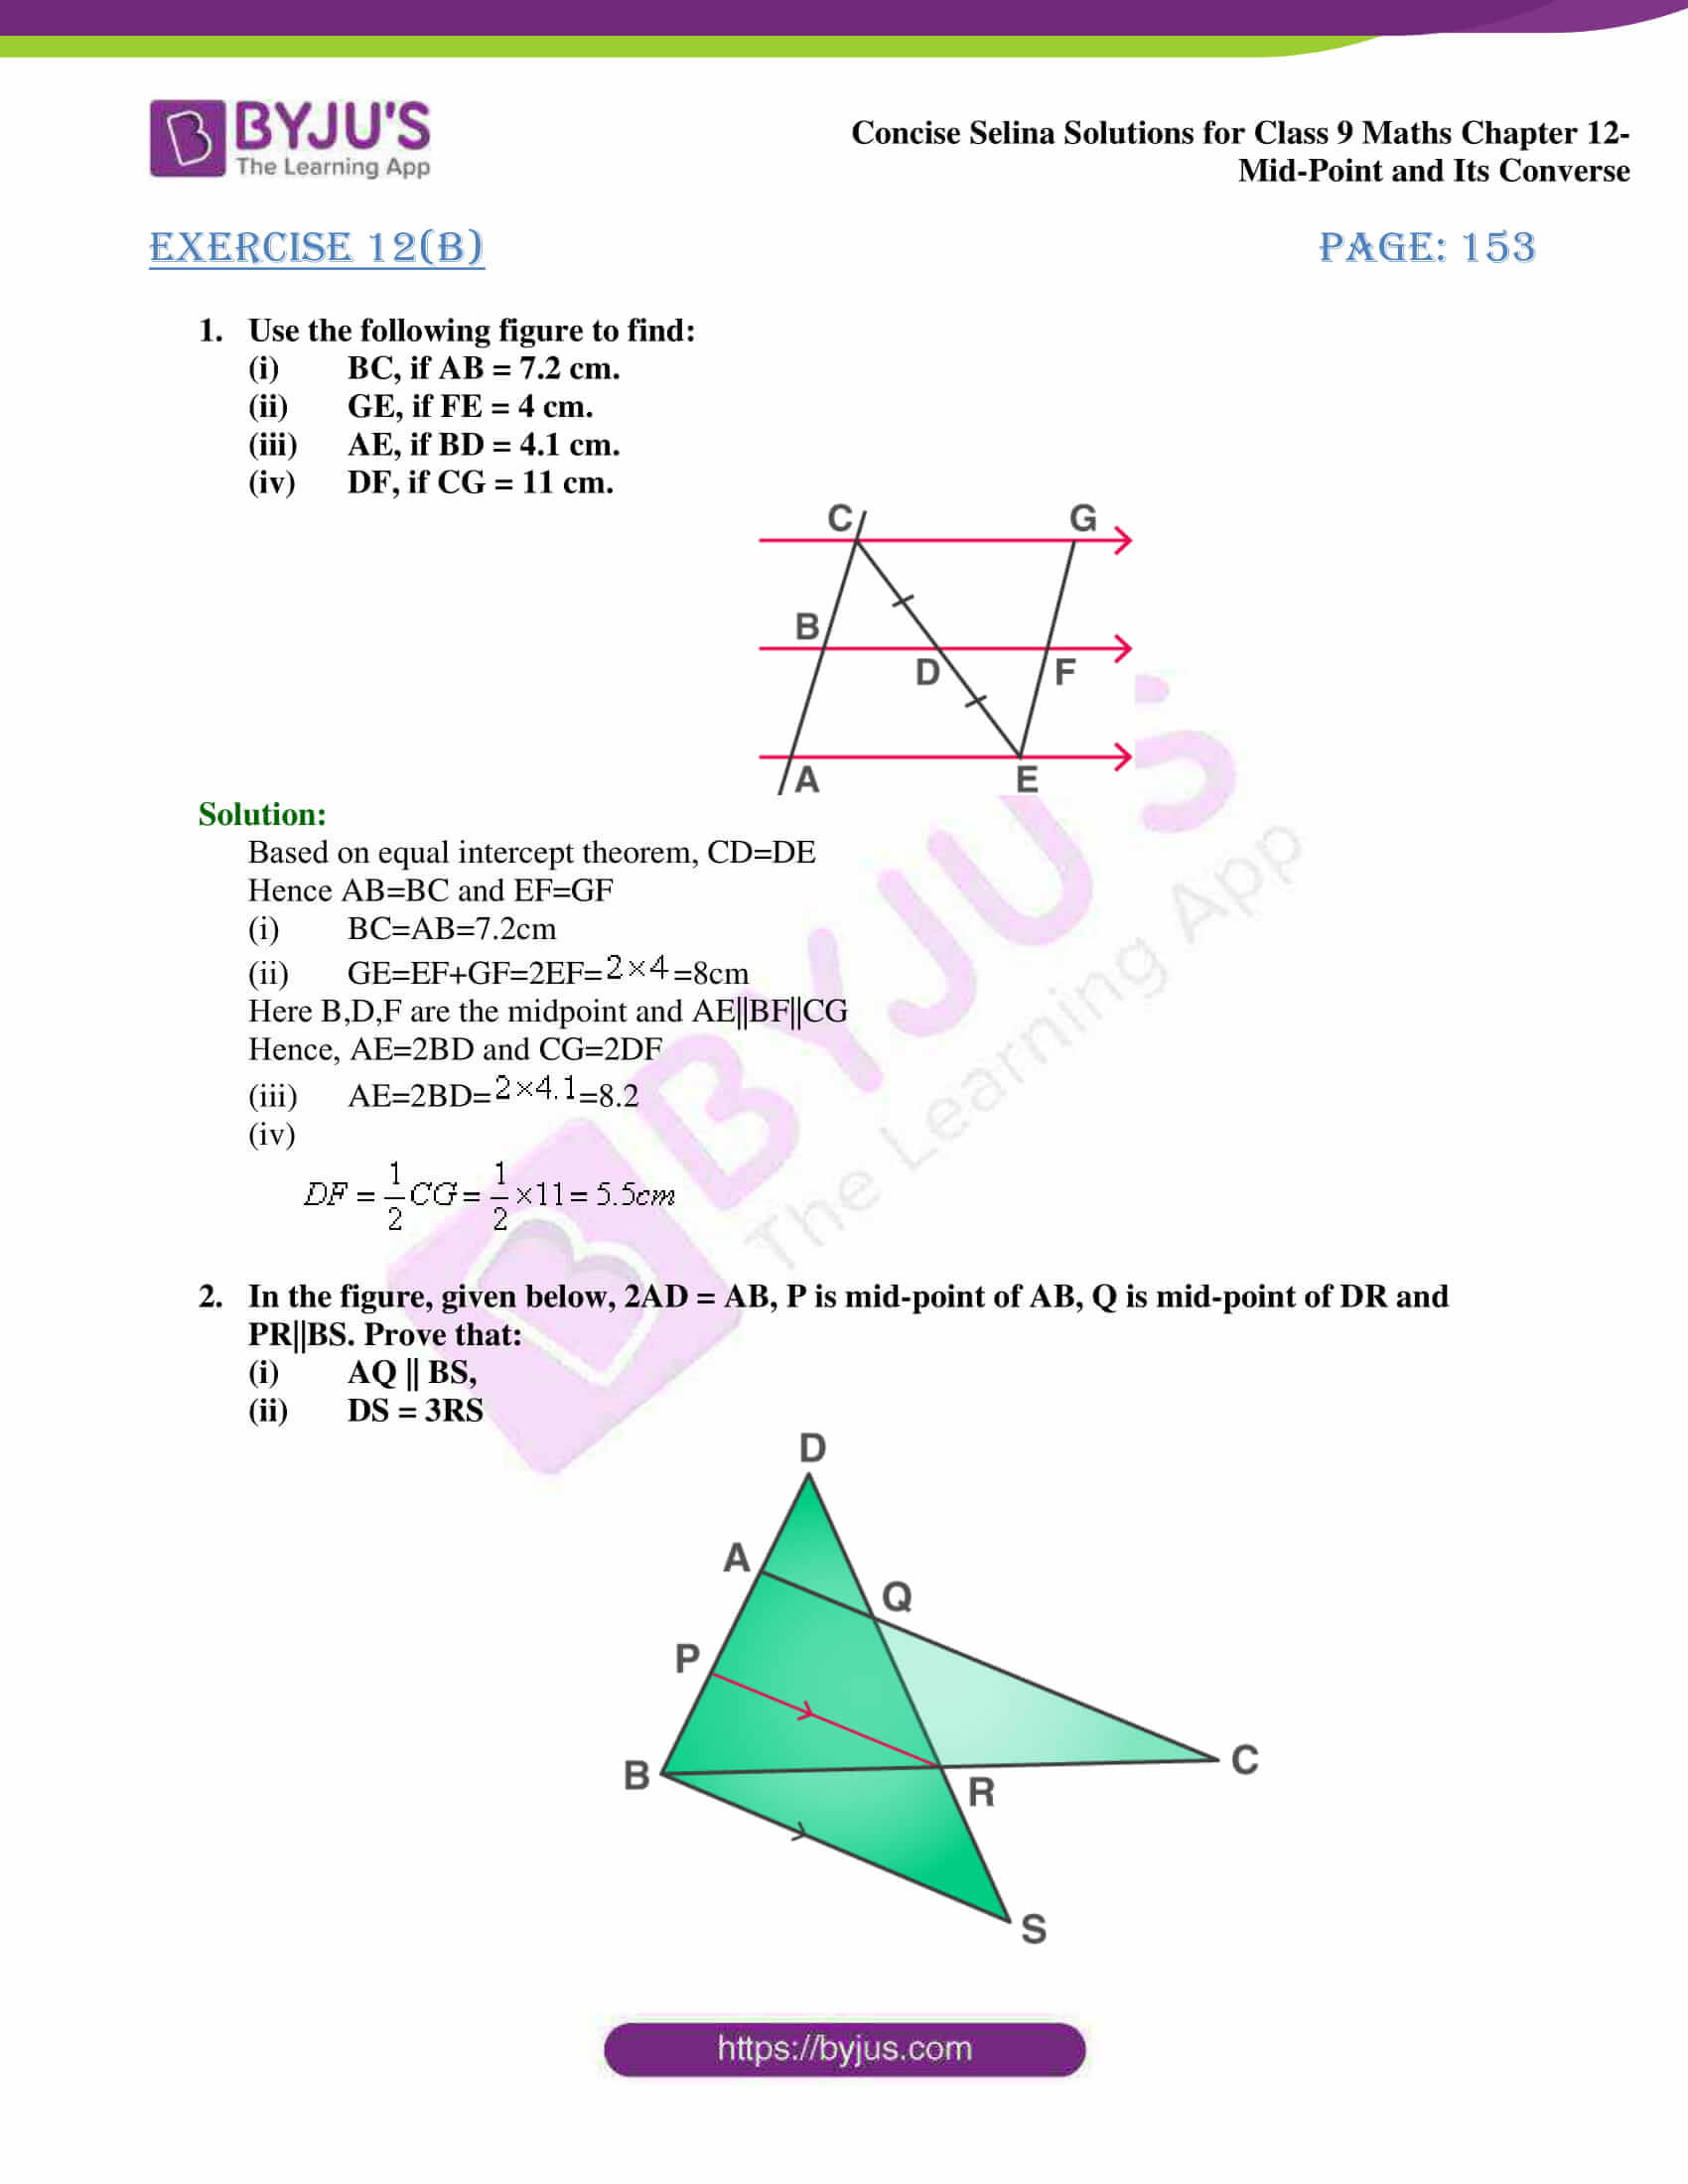 selina Solutions for Class 9 Maths Chapter 12 13